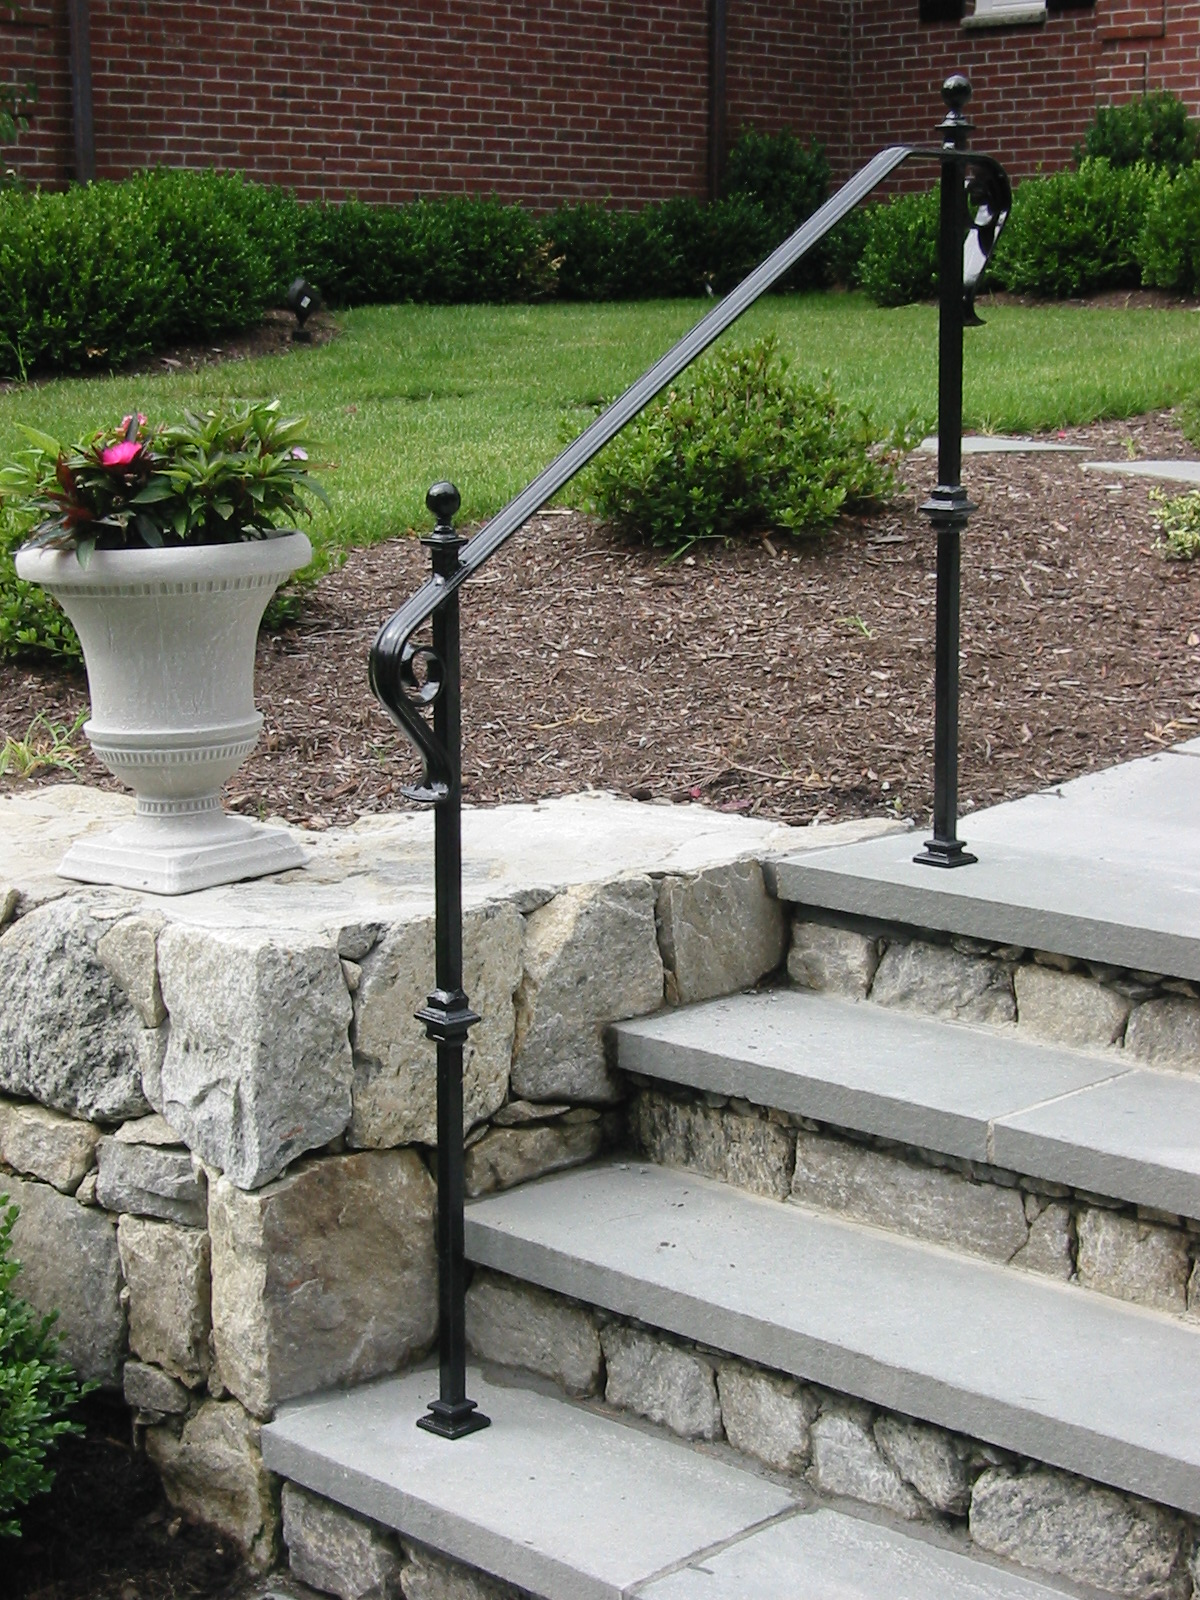 Picket-Less Railings with Baluster Collars, Cover Shoes, Finial Balls & Scrolled Lamb's Tongue